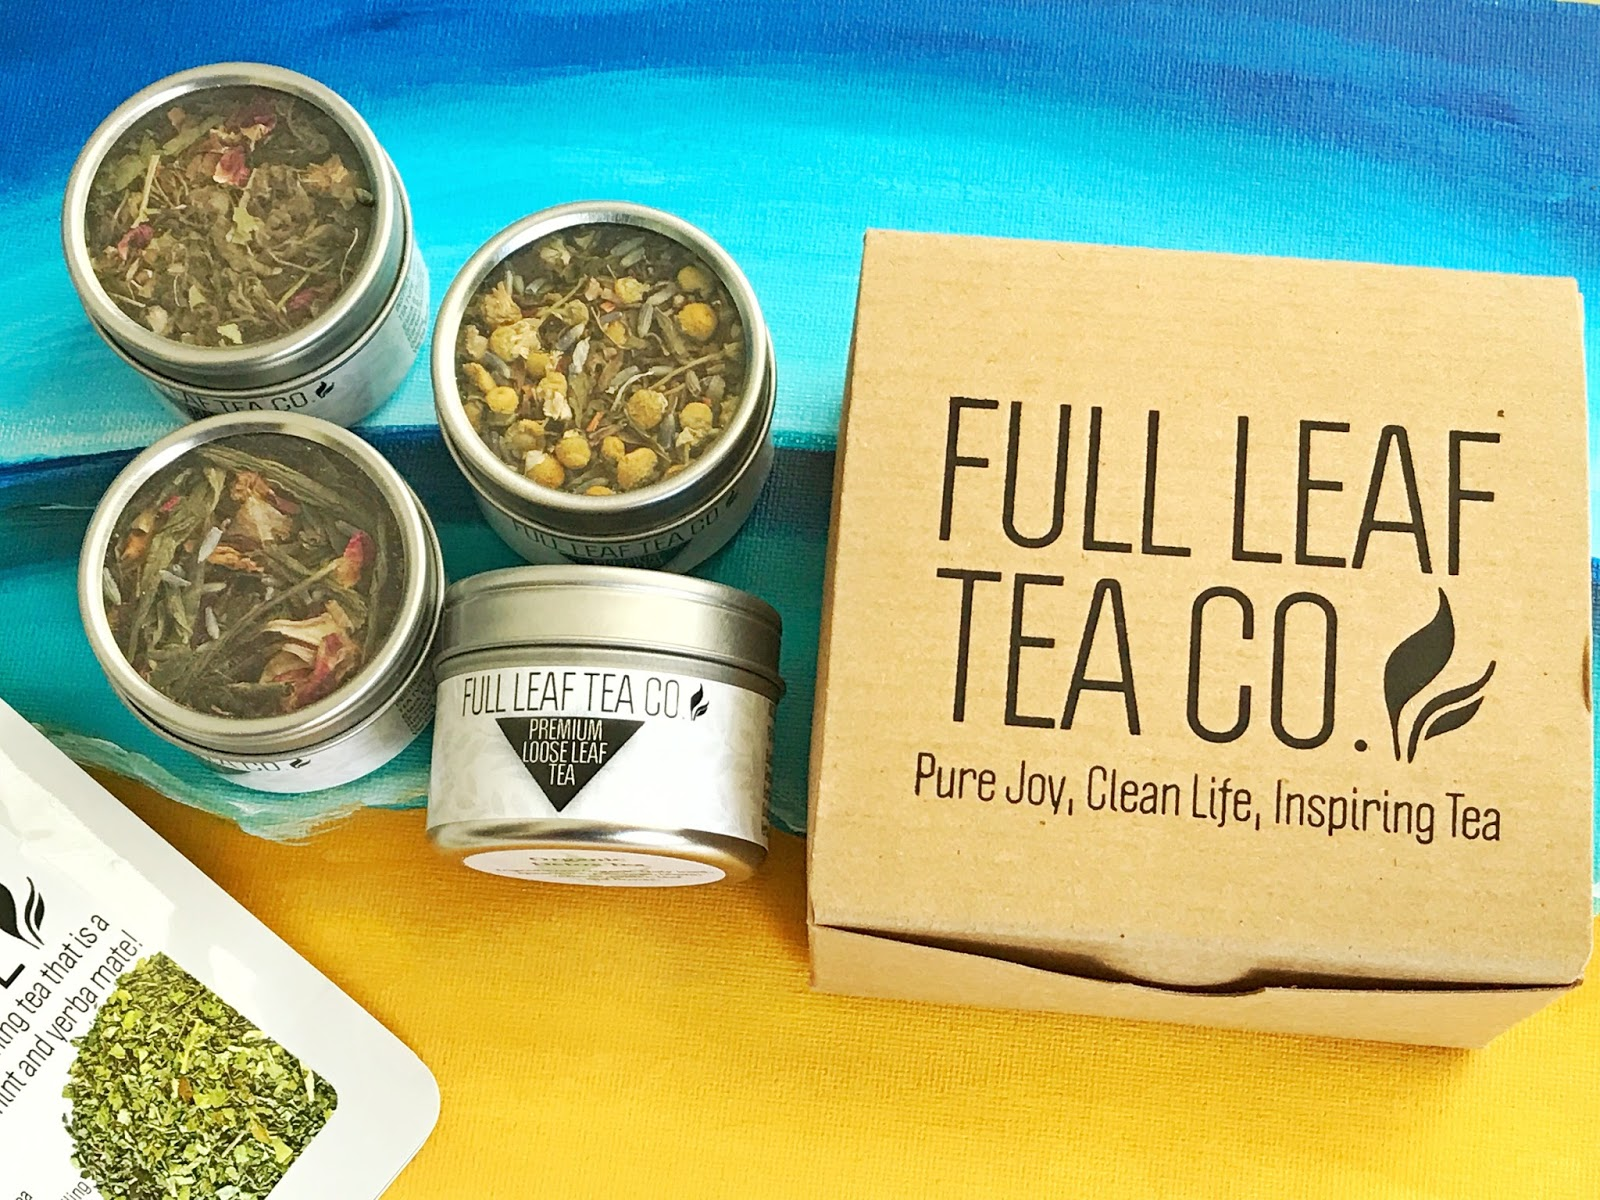 Let S Dive Right Into The Herbal Tea Varieties From Full Leaf Company That I Personally Tested And Loved